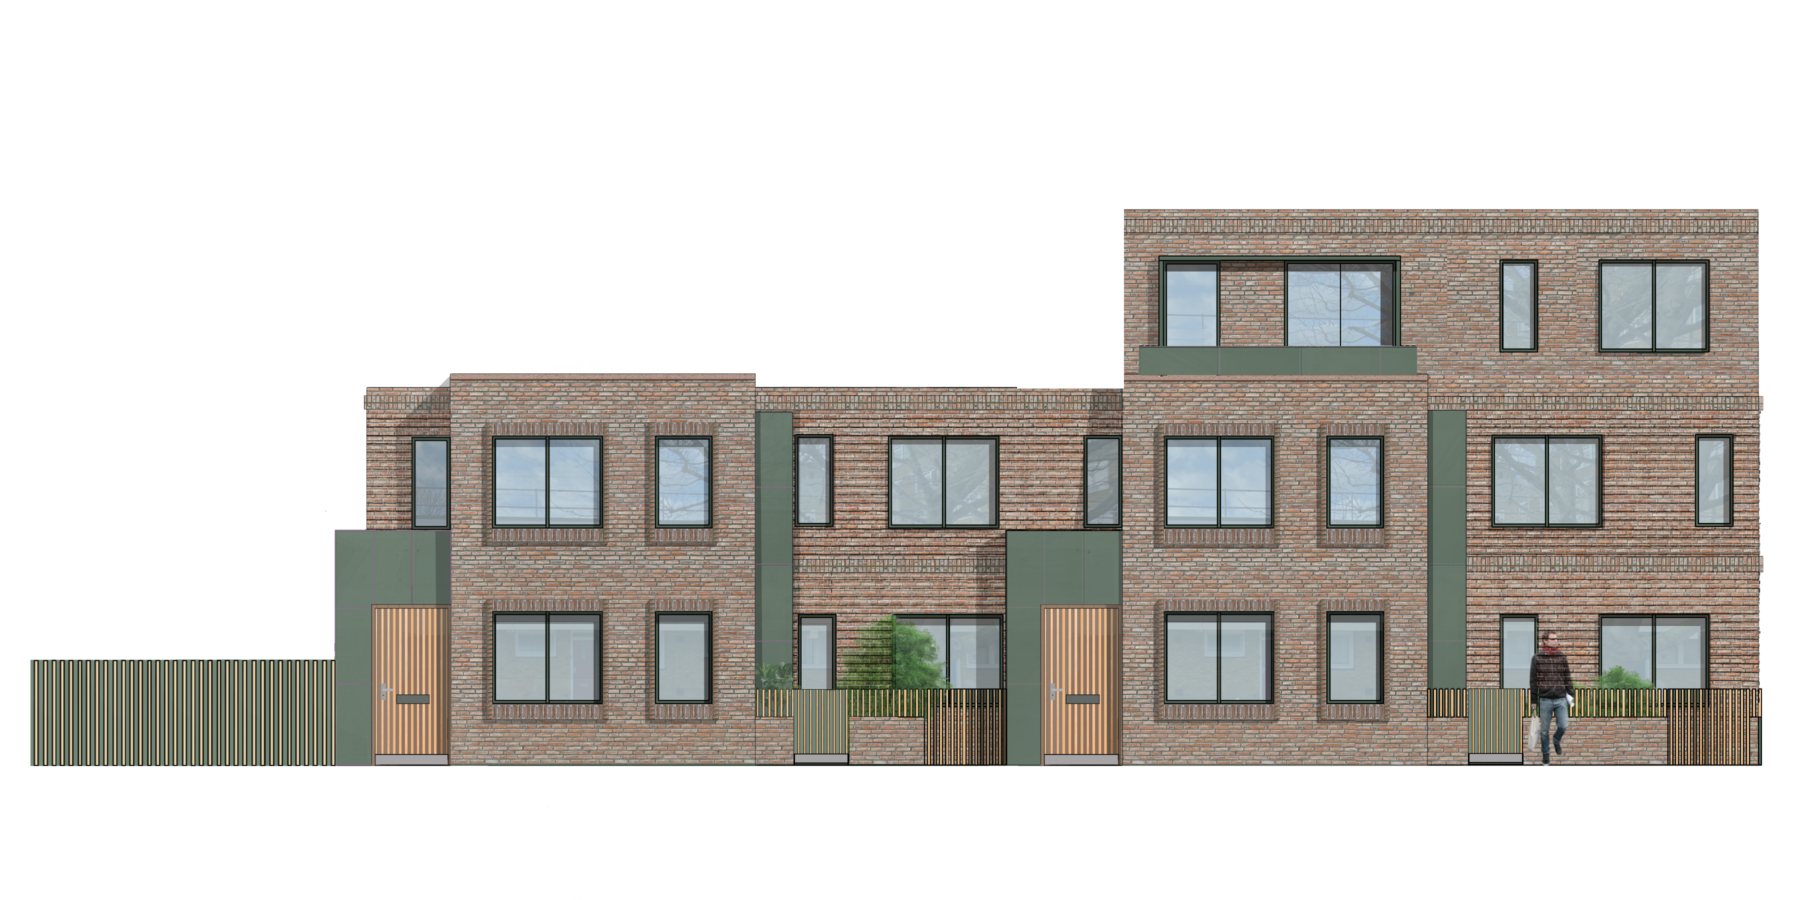 Sarah-Wigglesworth-Architects Queens-Road Front-Elevation 1800x3600